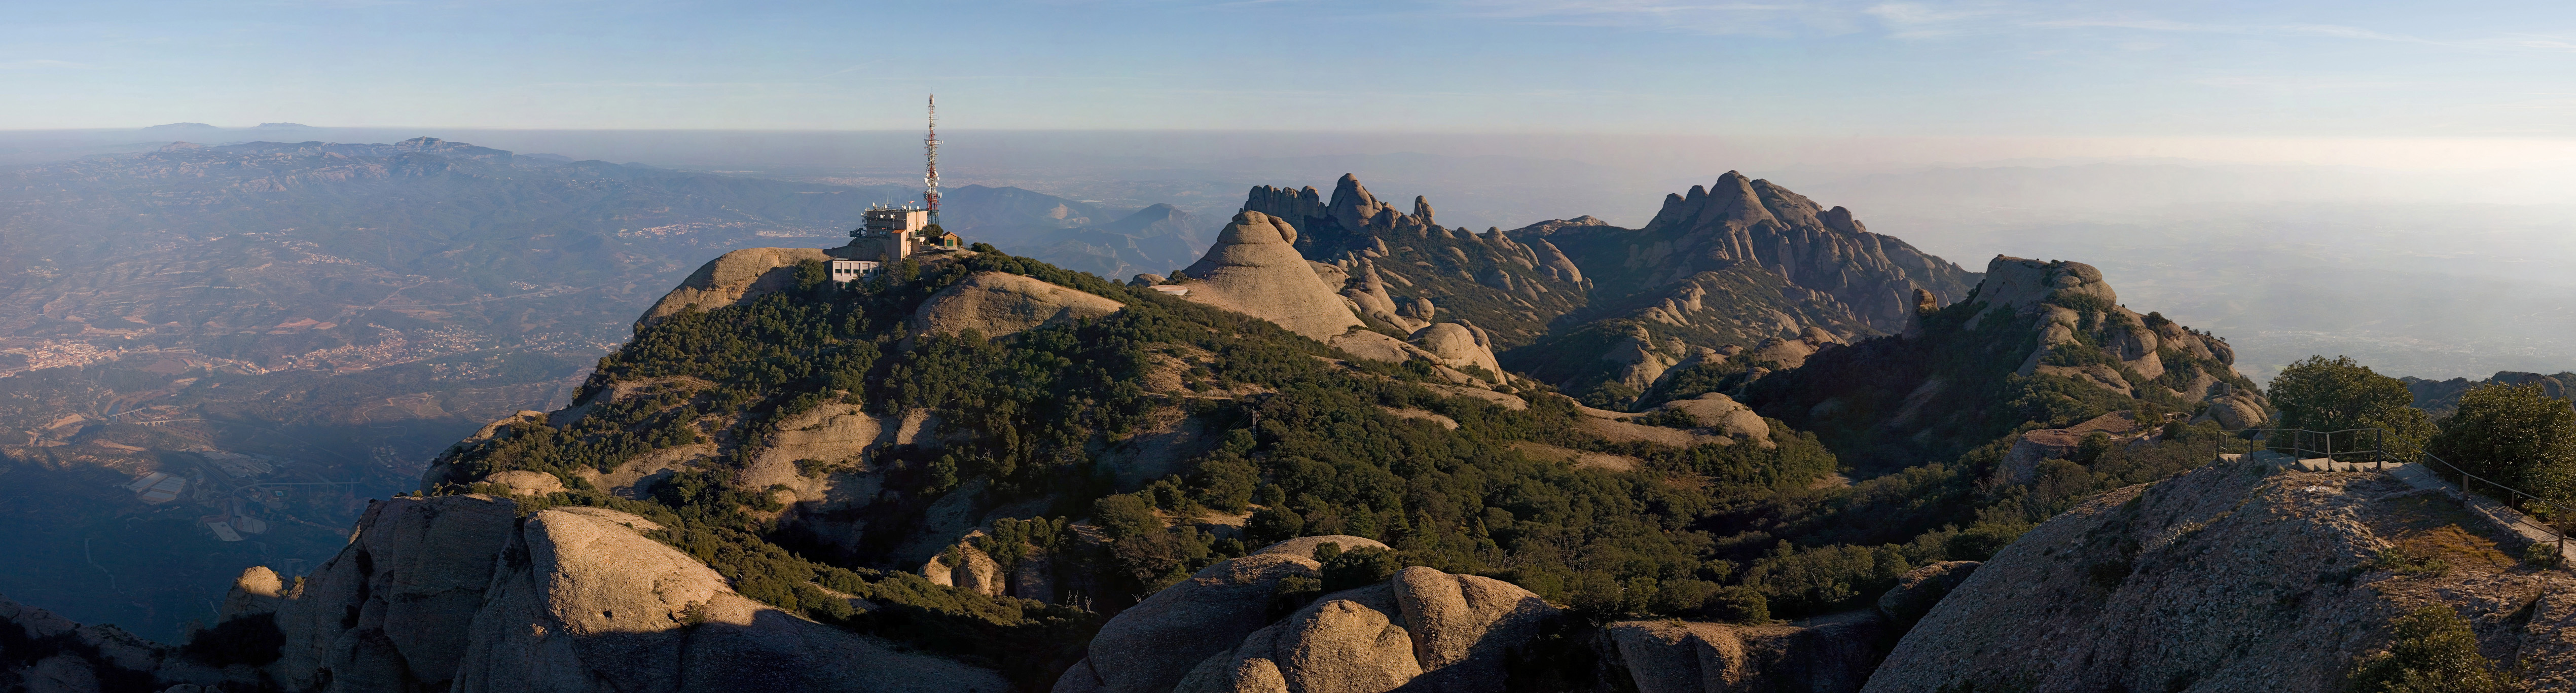 montserrat Mountains Catalonia Spain HD Wallpaper